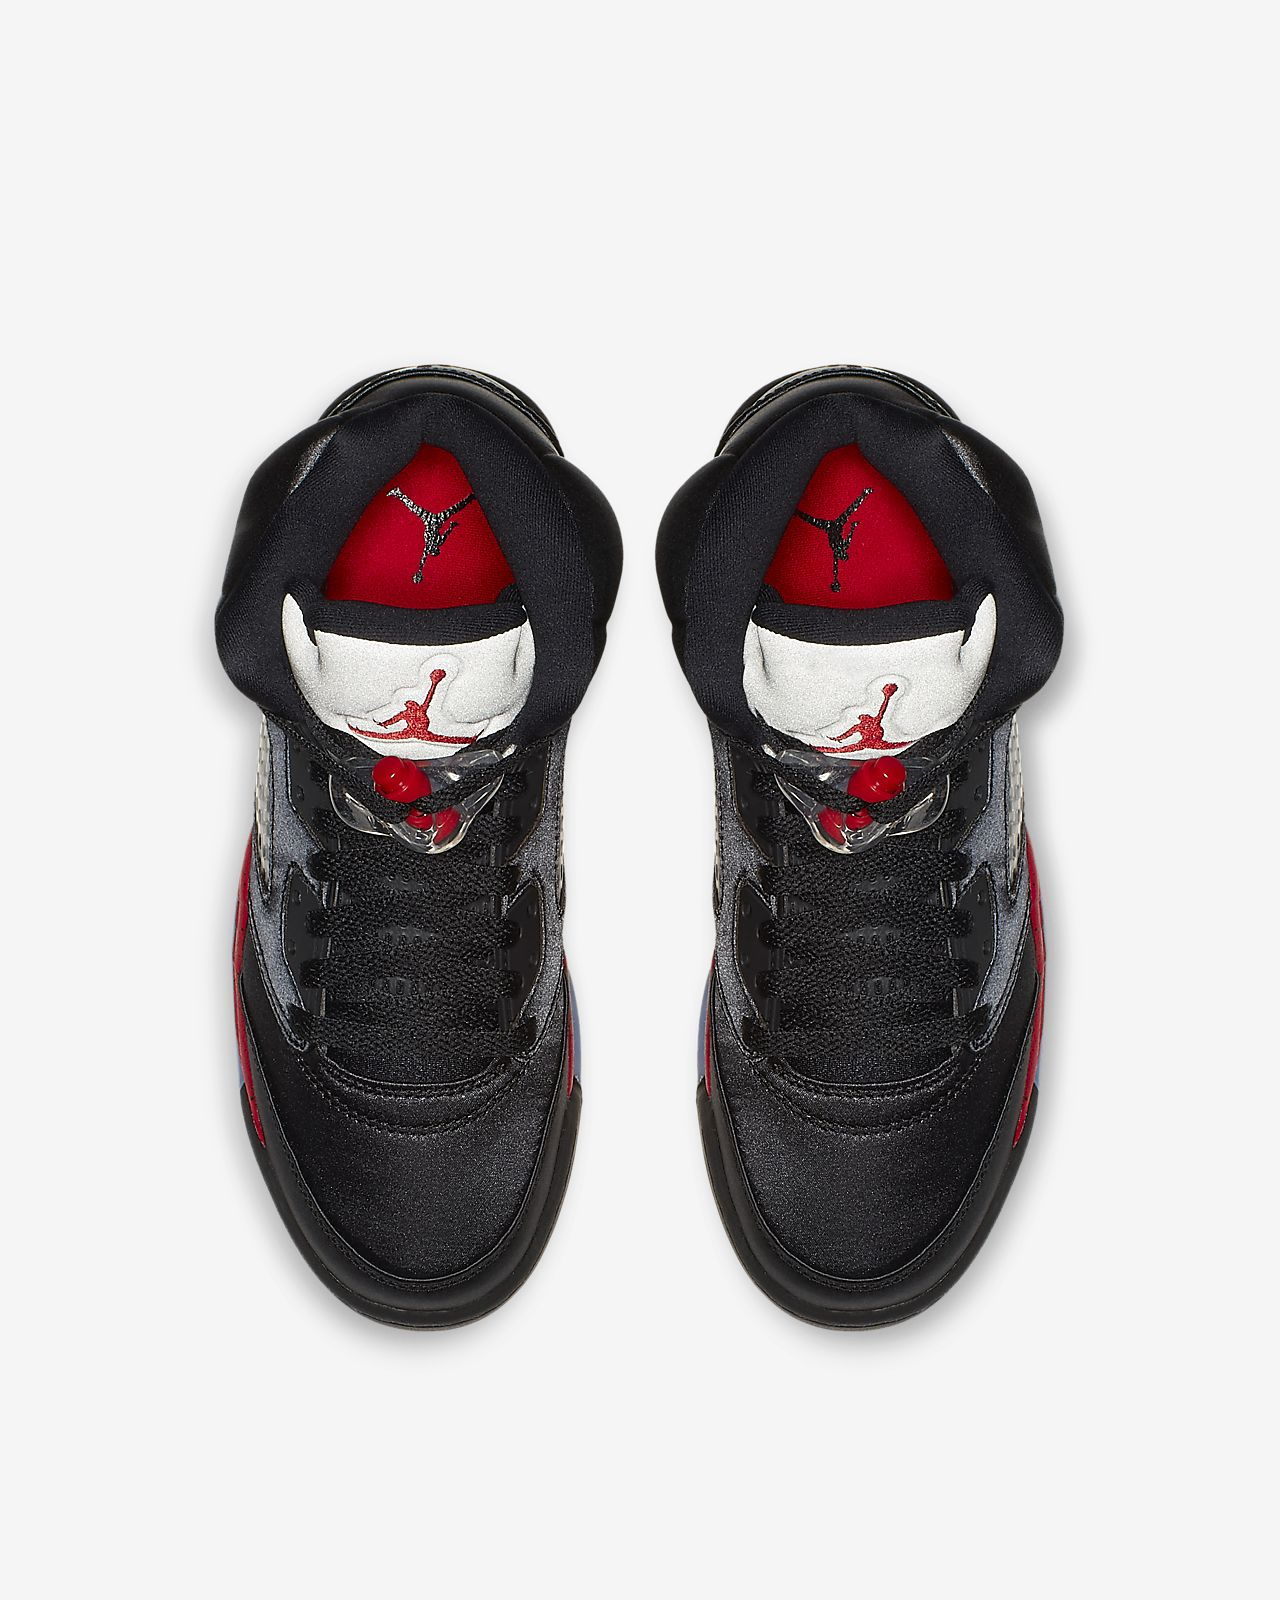 b6564b1e79b Low Resolution Air Jordan 5 Retro Older Kids' Shoe Air Jordan 5 Retro Older  Kids' Shoe